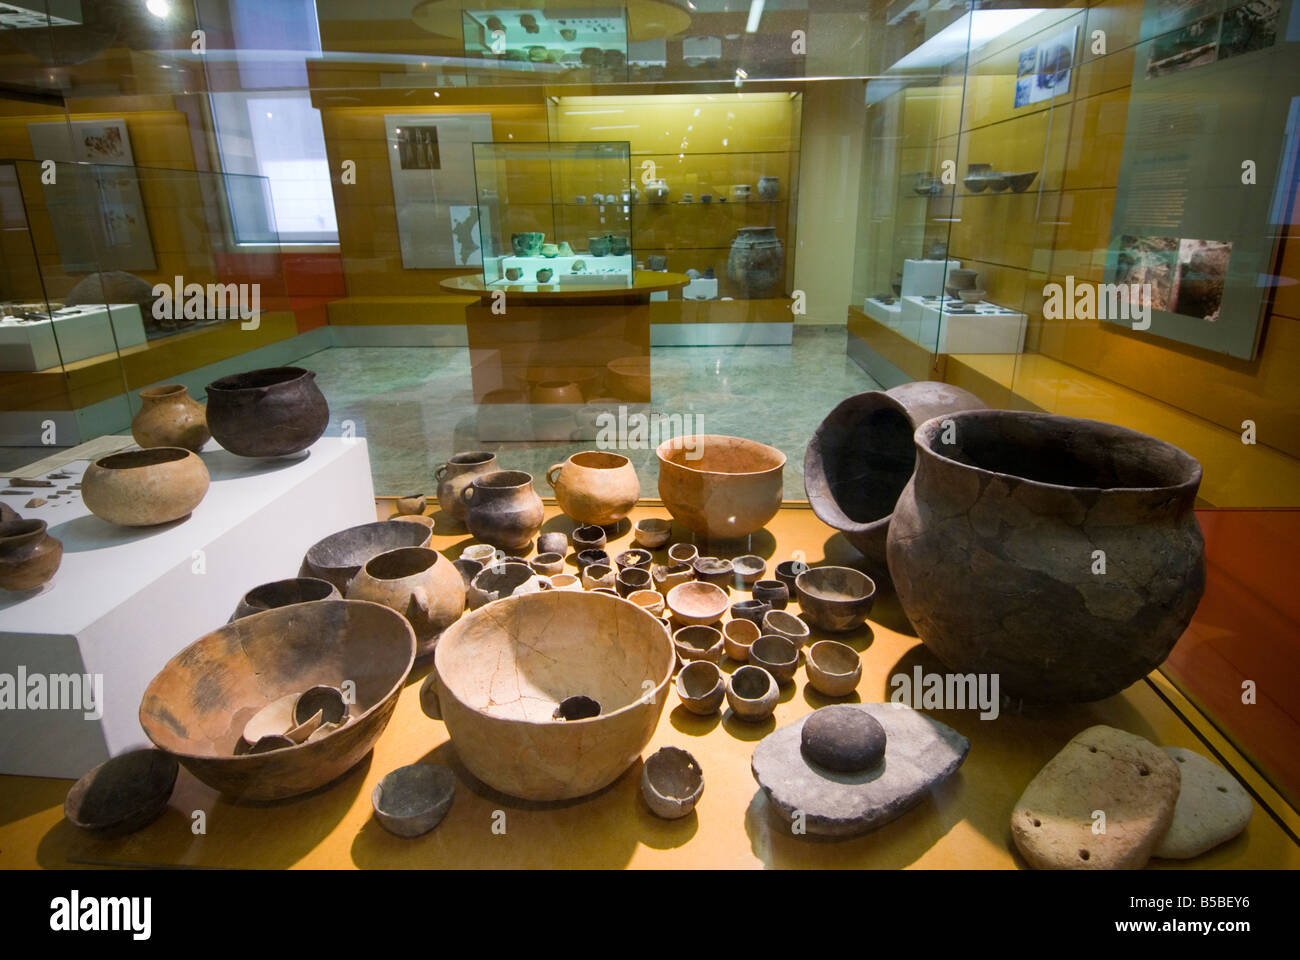 Pottery display from archeological sites in the Valencian Prehistoric and Ethnology Museum Spain - Stock Image